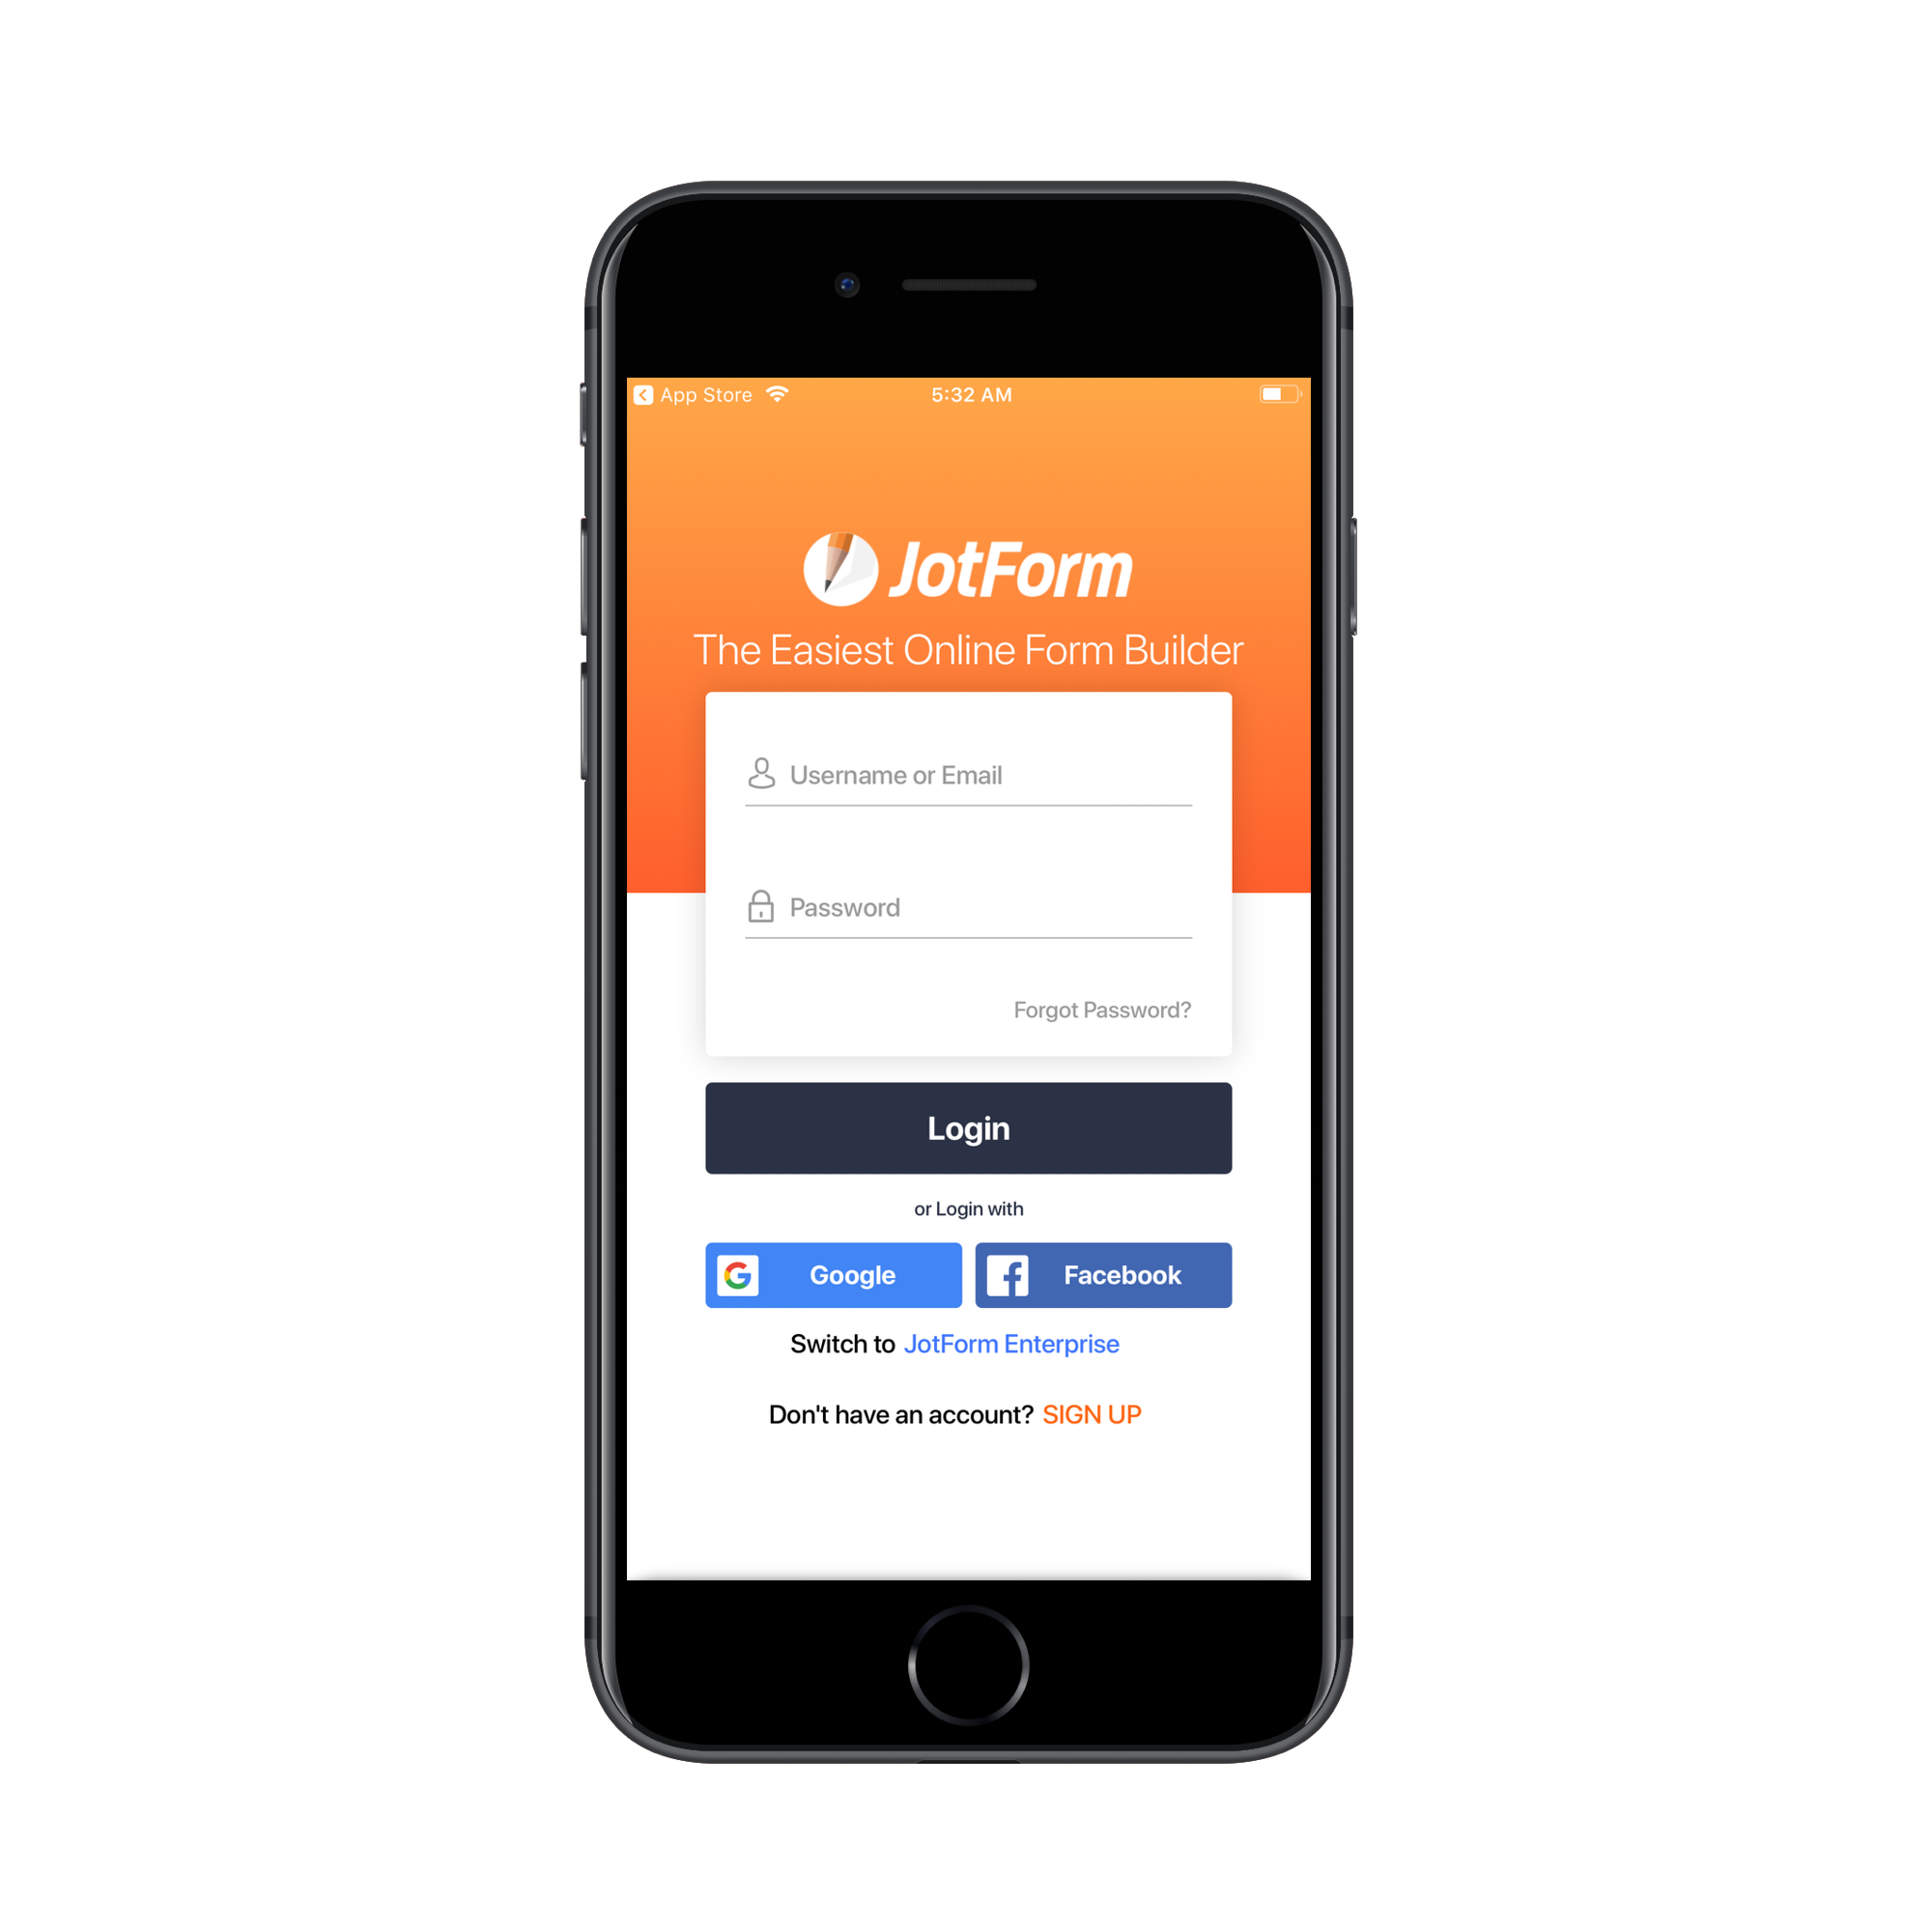 How to Download and Start Using JotForm Mobile Forms